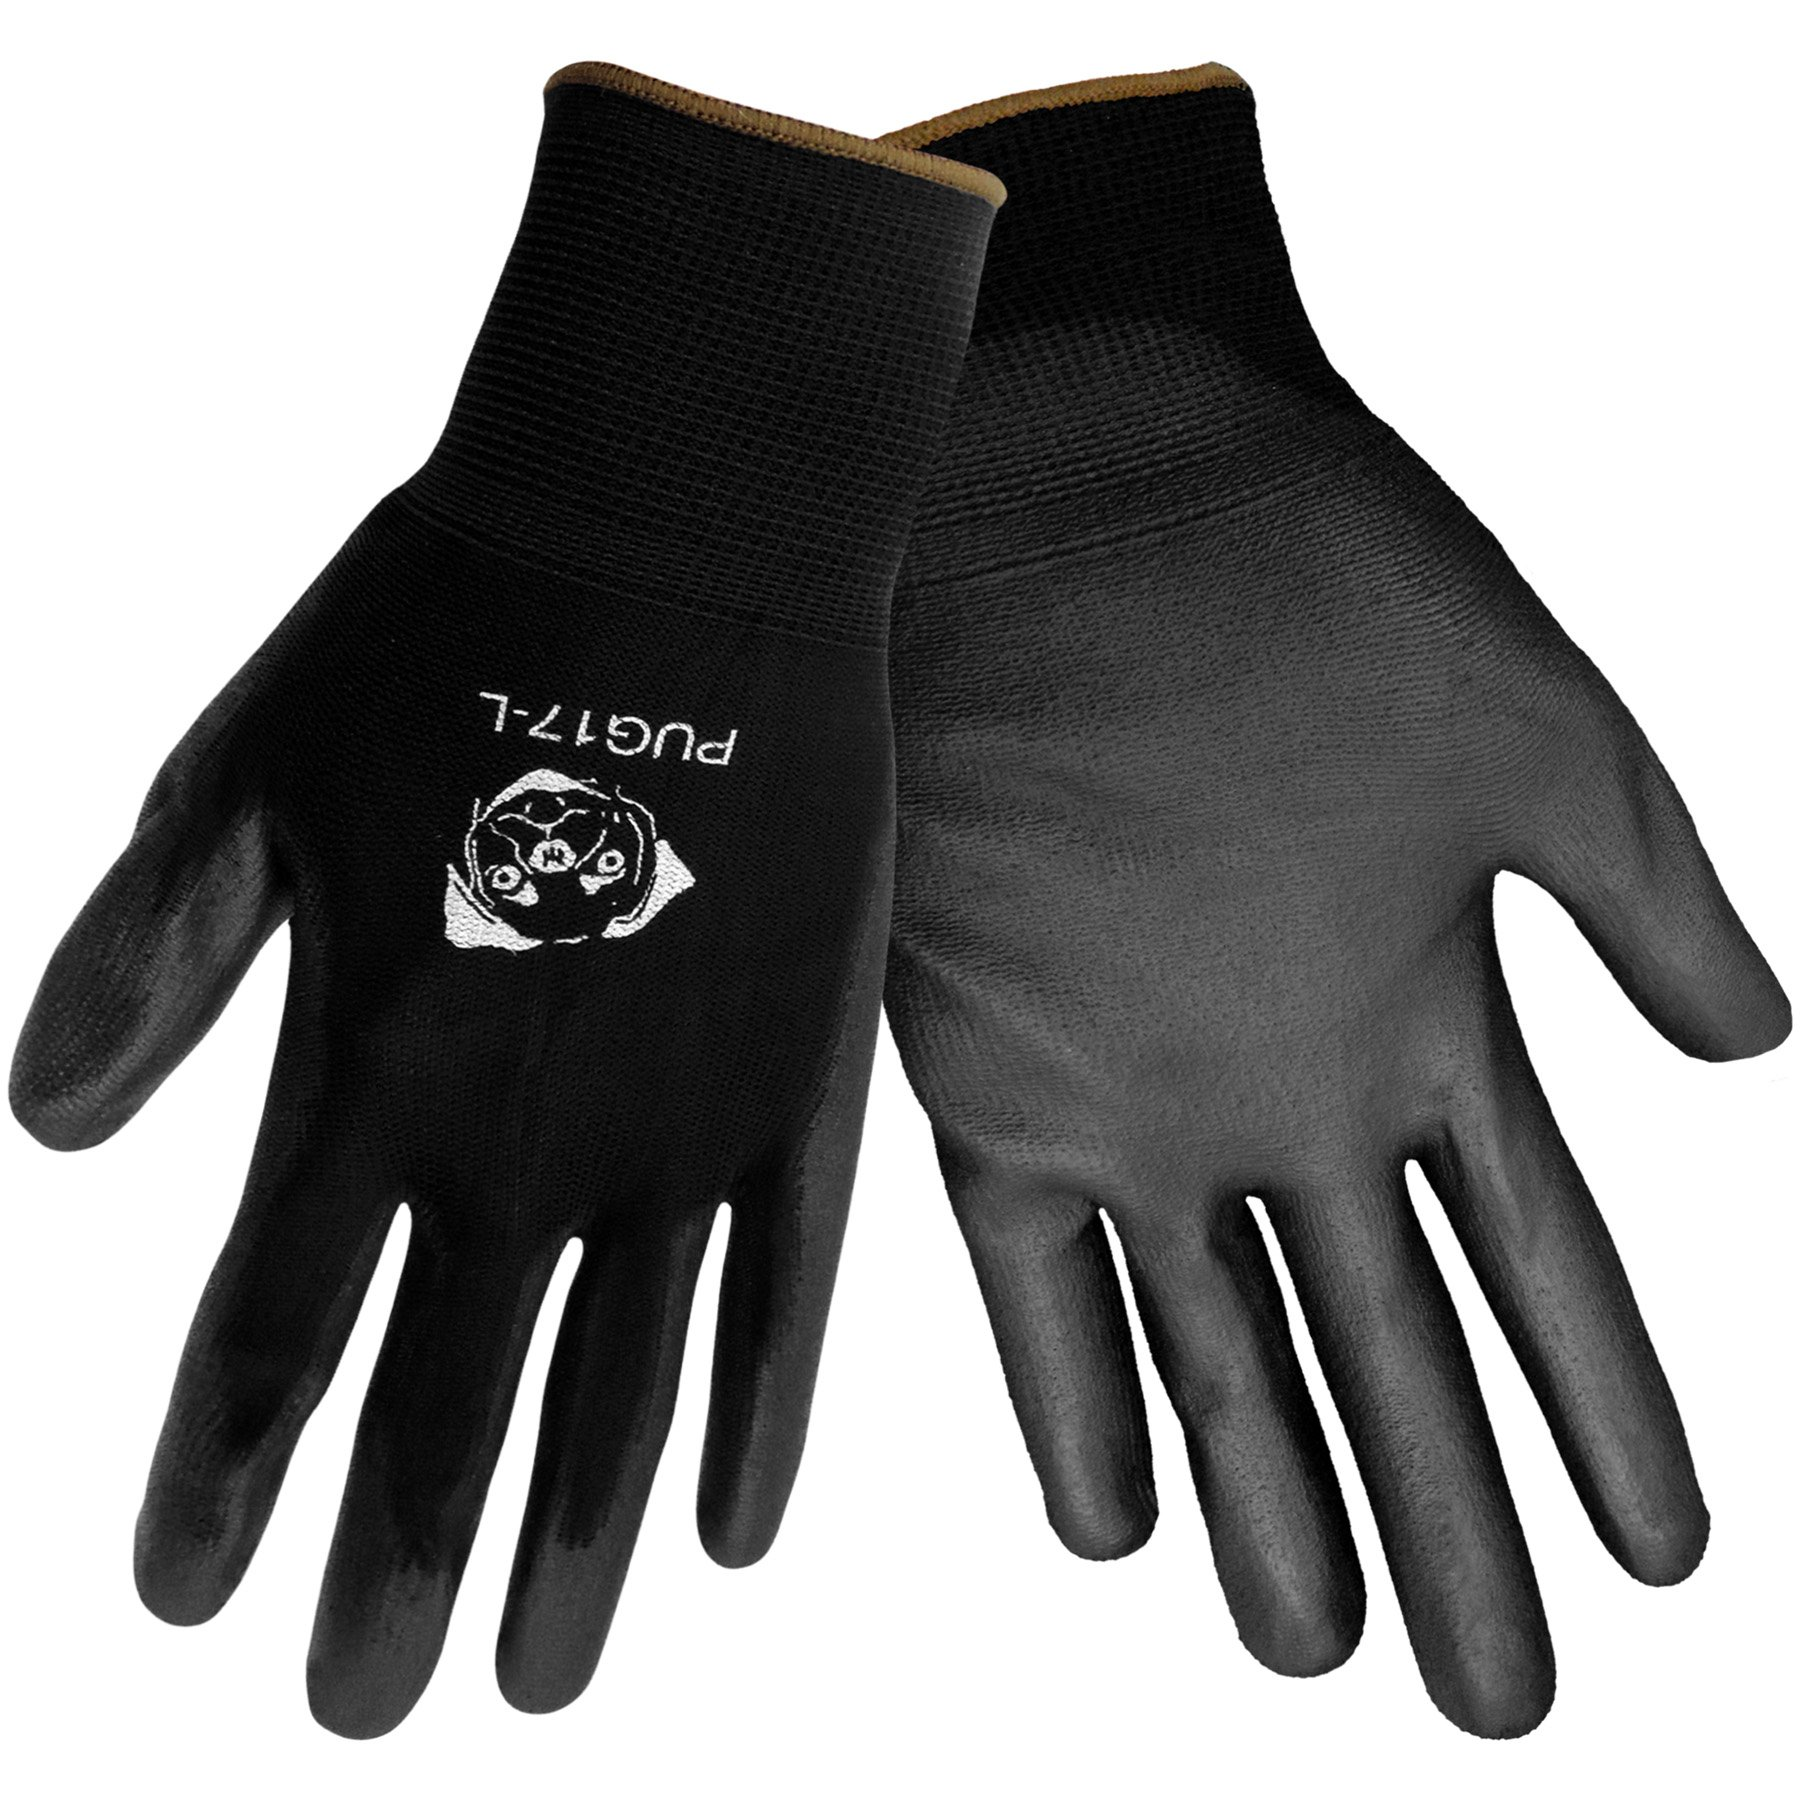 Global Glove PUG17 Polyurethane/Nylon Glove, Work, Large, Black (Case of 144)